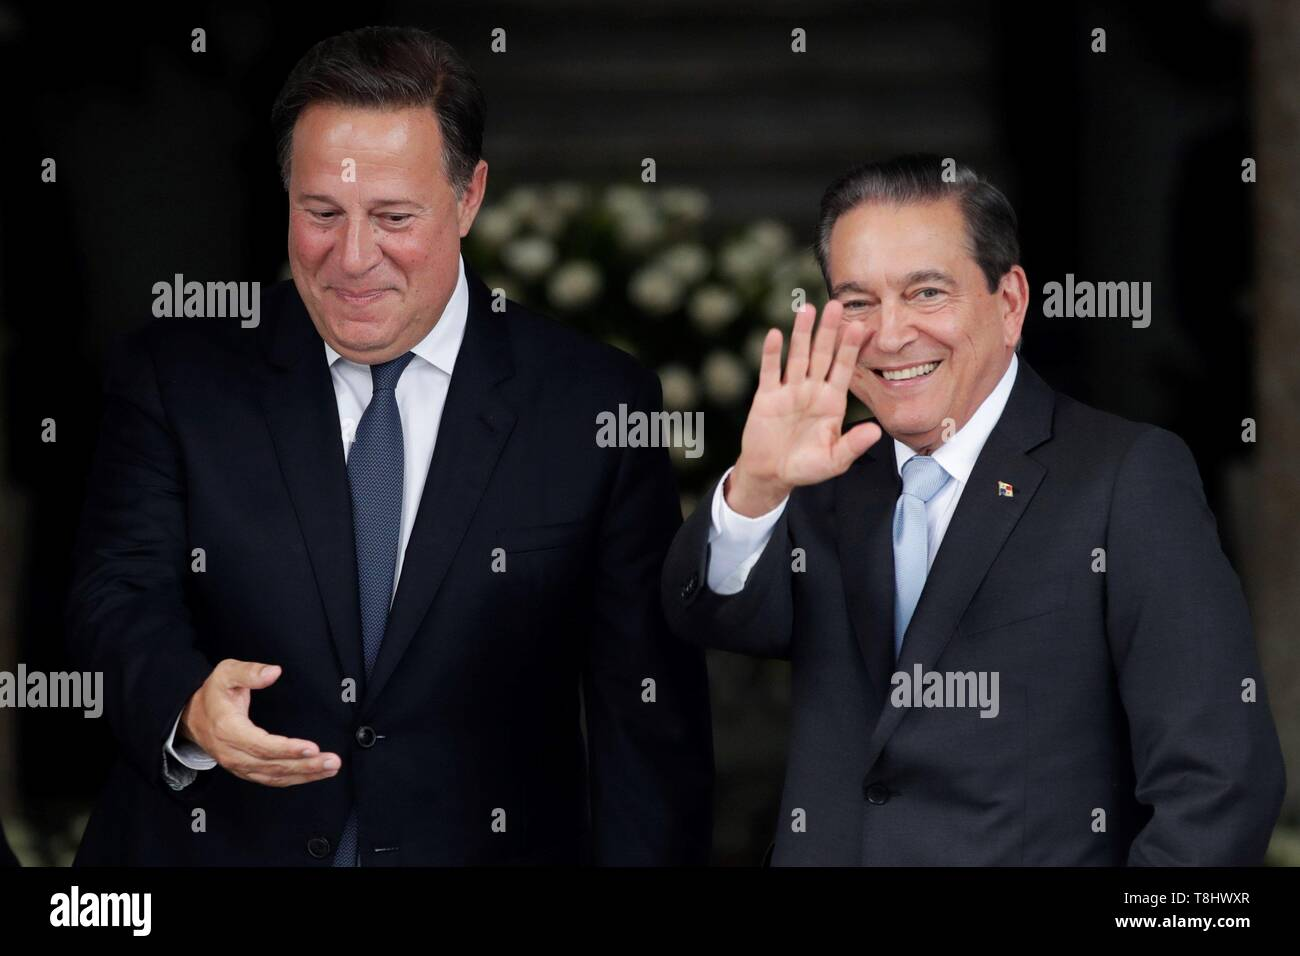 Panama's President Juan Carlos Varela (L) greets with the elect President Laurentino Cortizo (R) after a meeting of command handover at the Presidential Palace, in Panama City, Panama, on 13 May 2019. EFE/Bienvenido Velasco - Stock Image